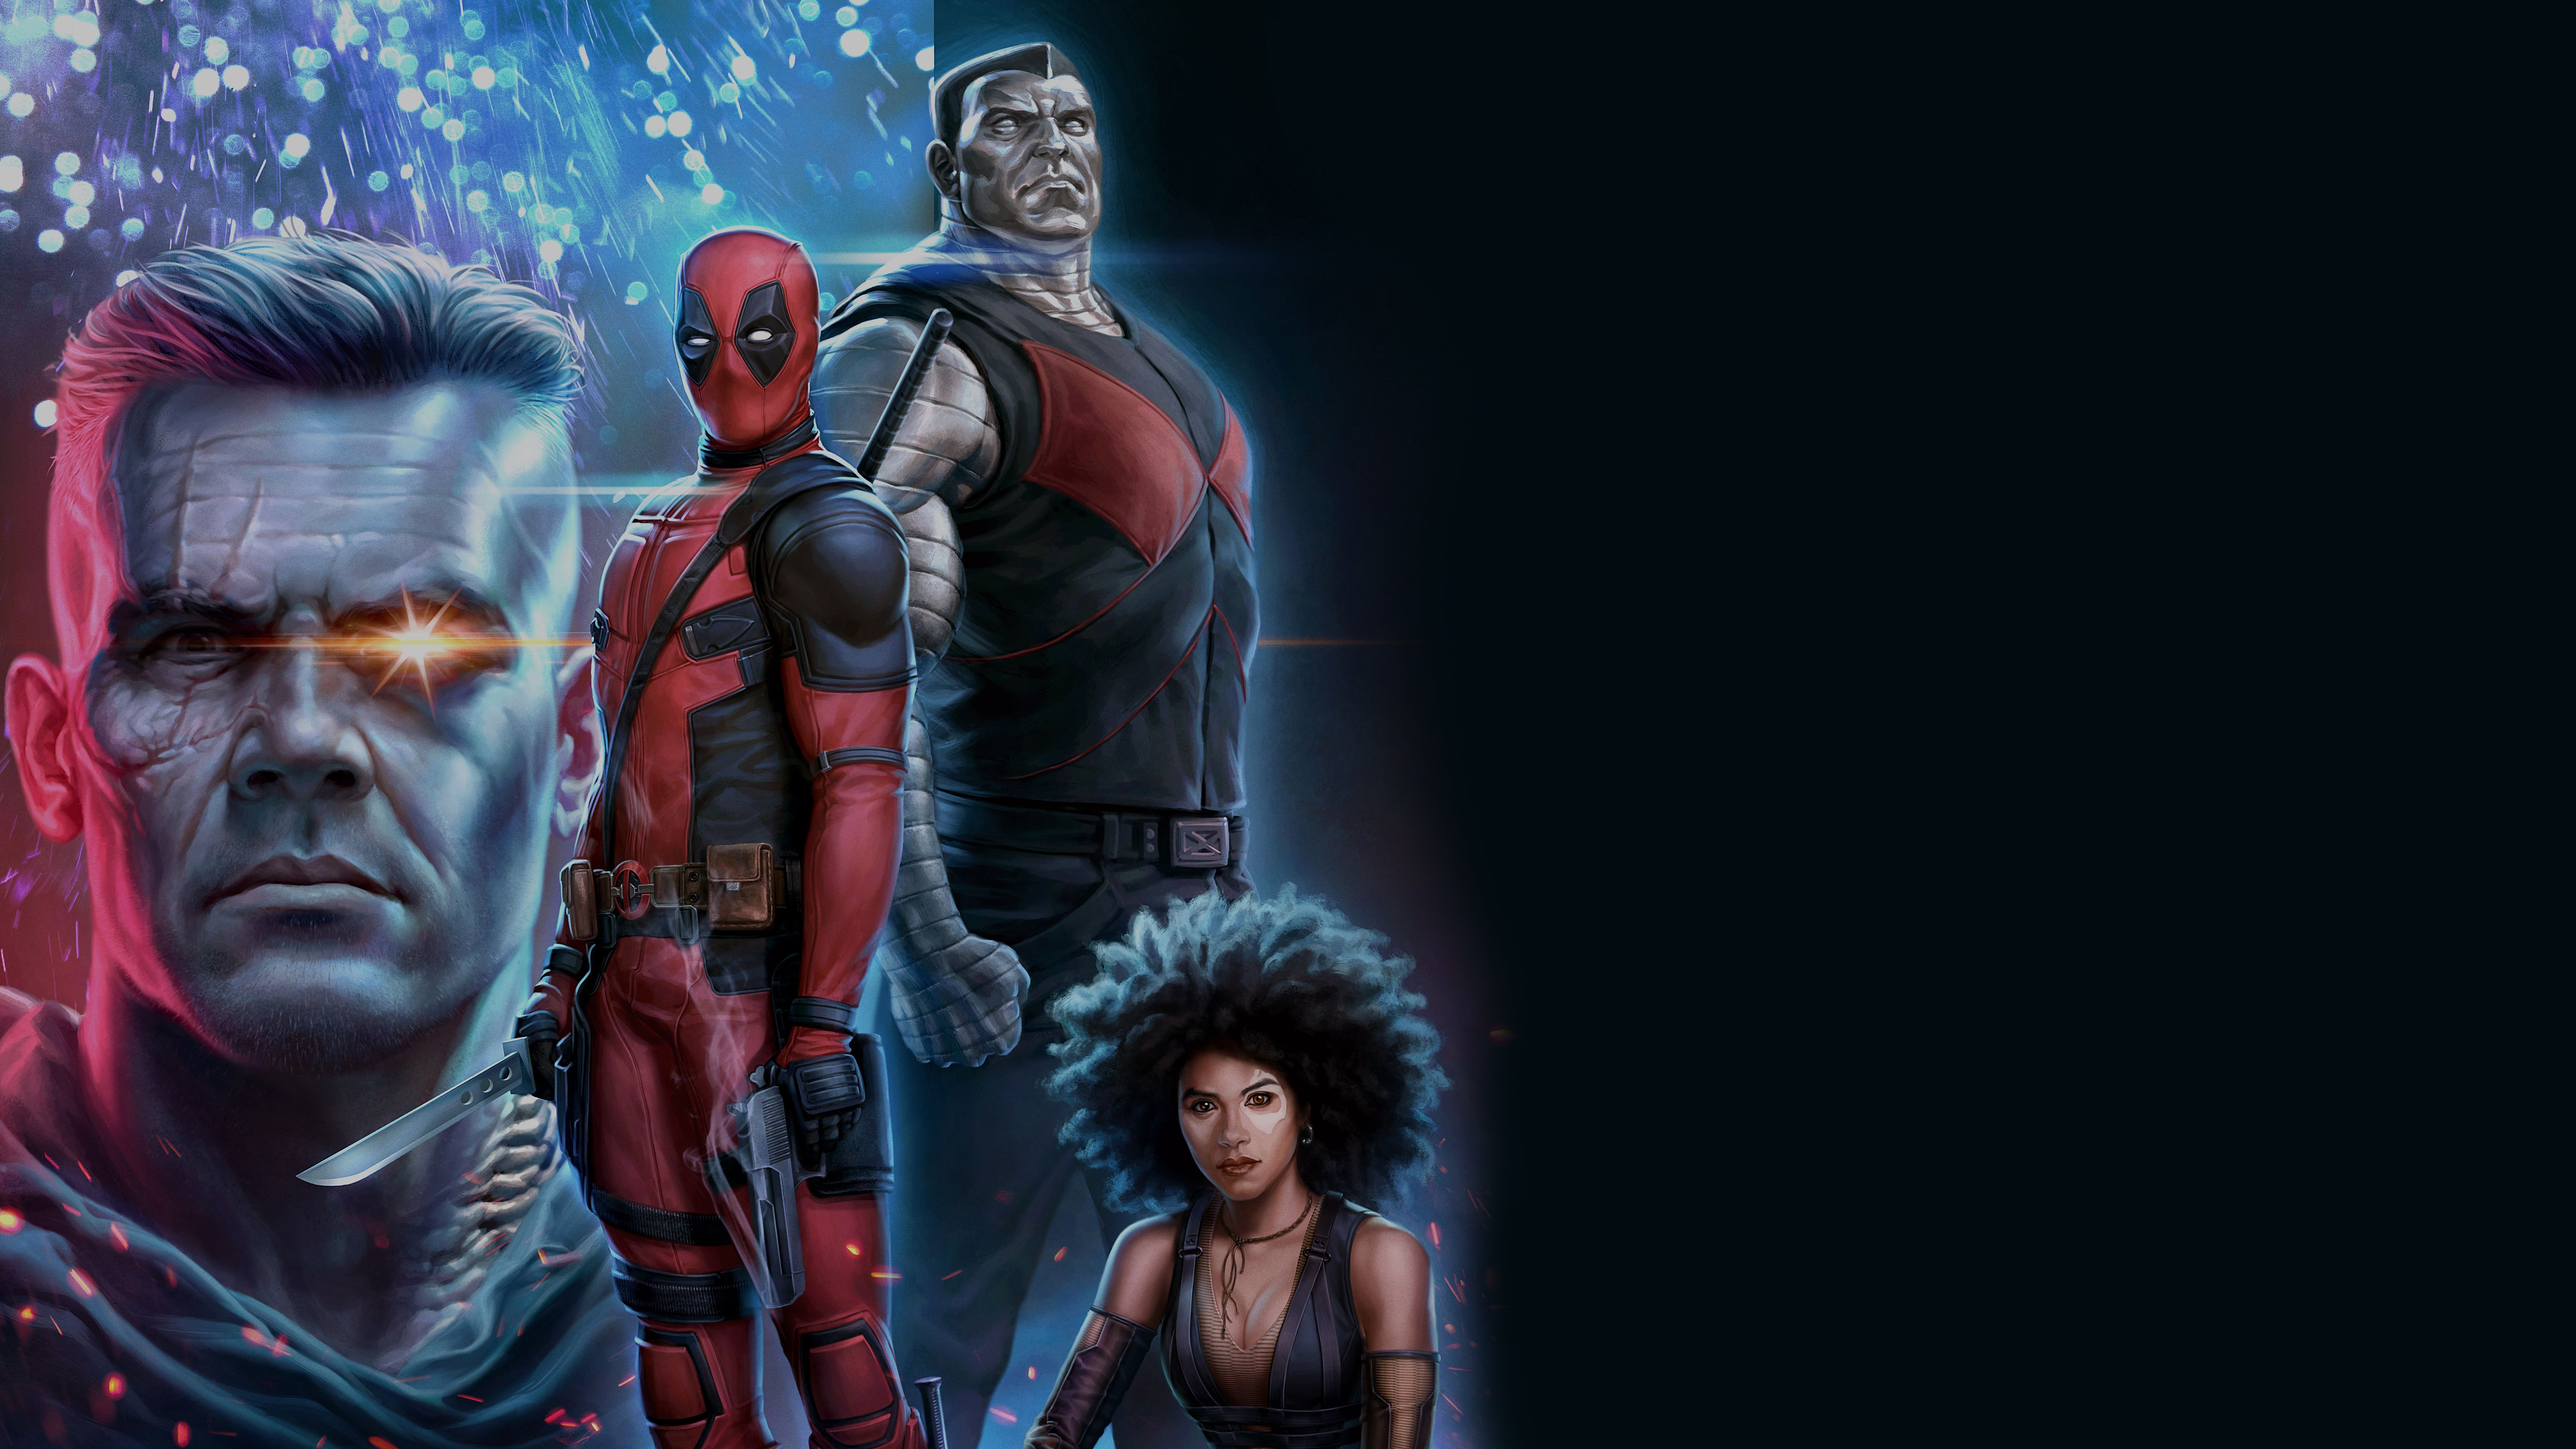 7680x4320 7680x4320 Deadpool 2 Movie 8k 8k HD 4k Wallpapers, Images ...